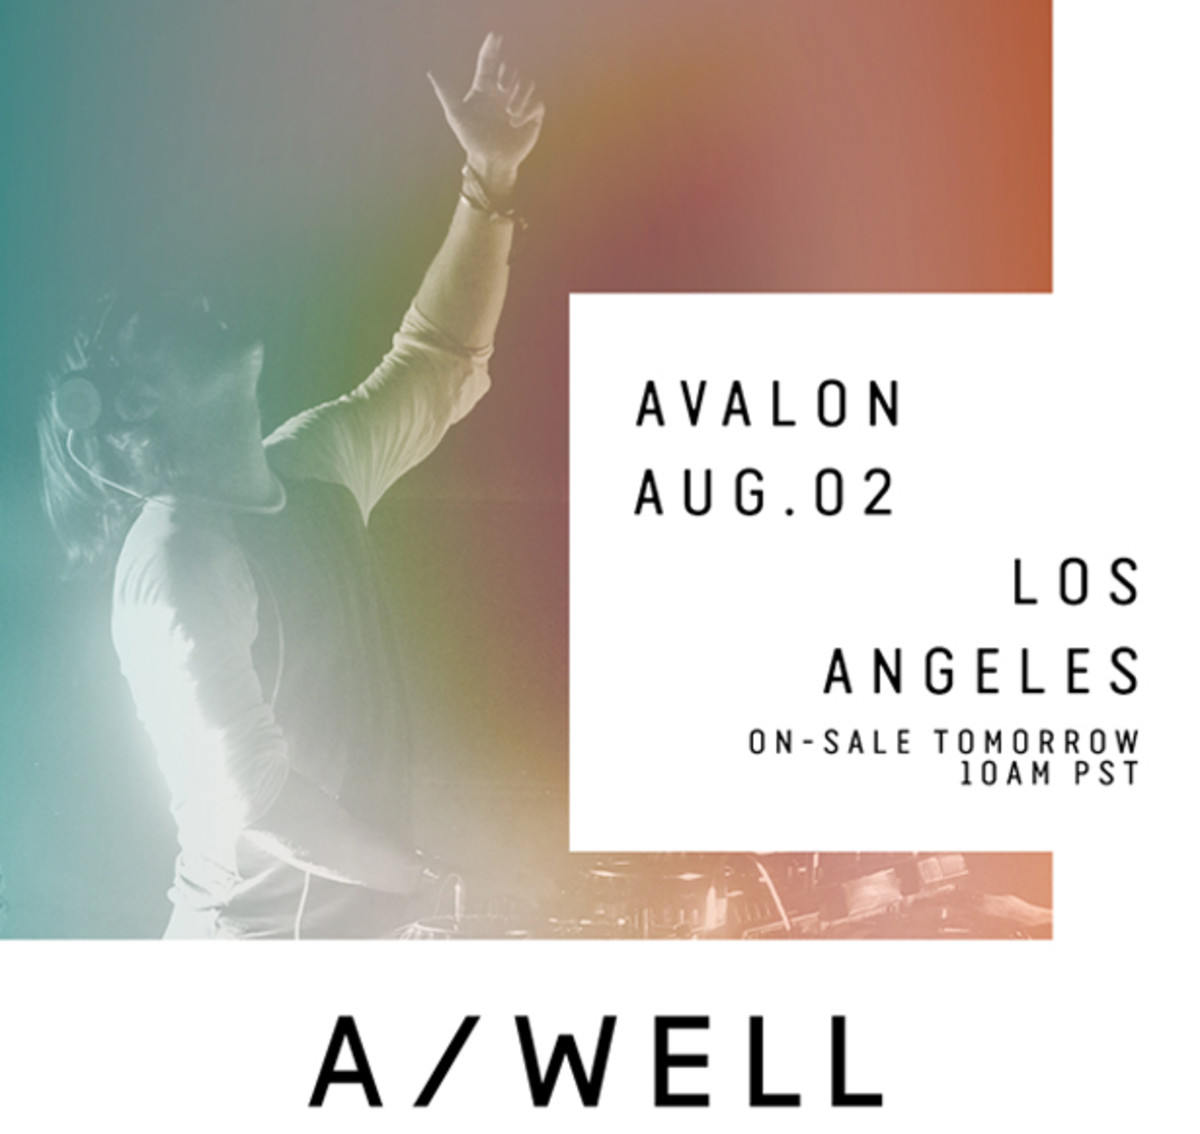 Axwell: Los Angeles At Avalon - August 2nd 2014